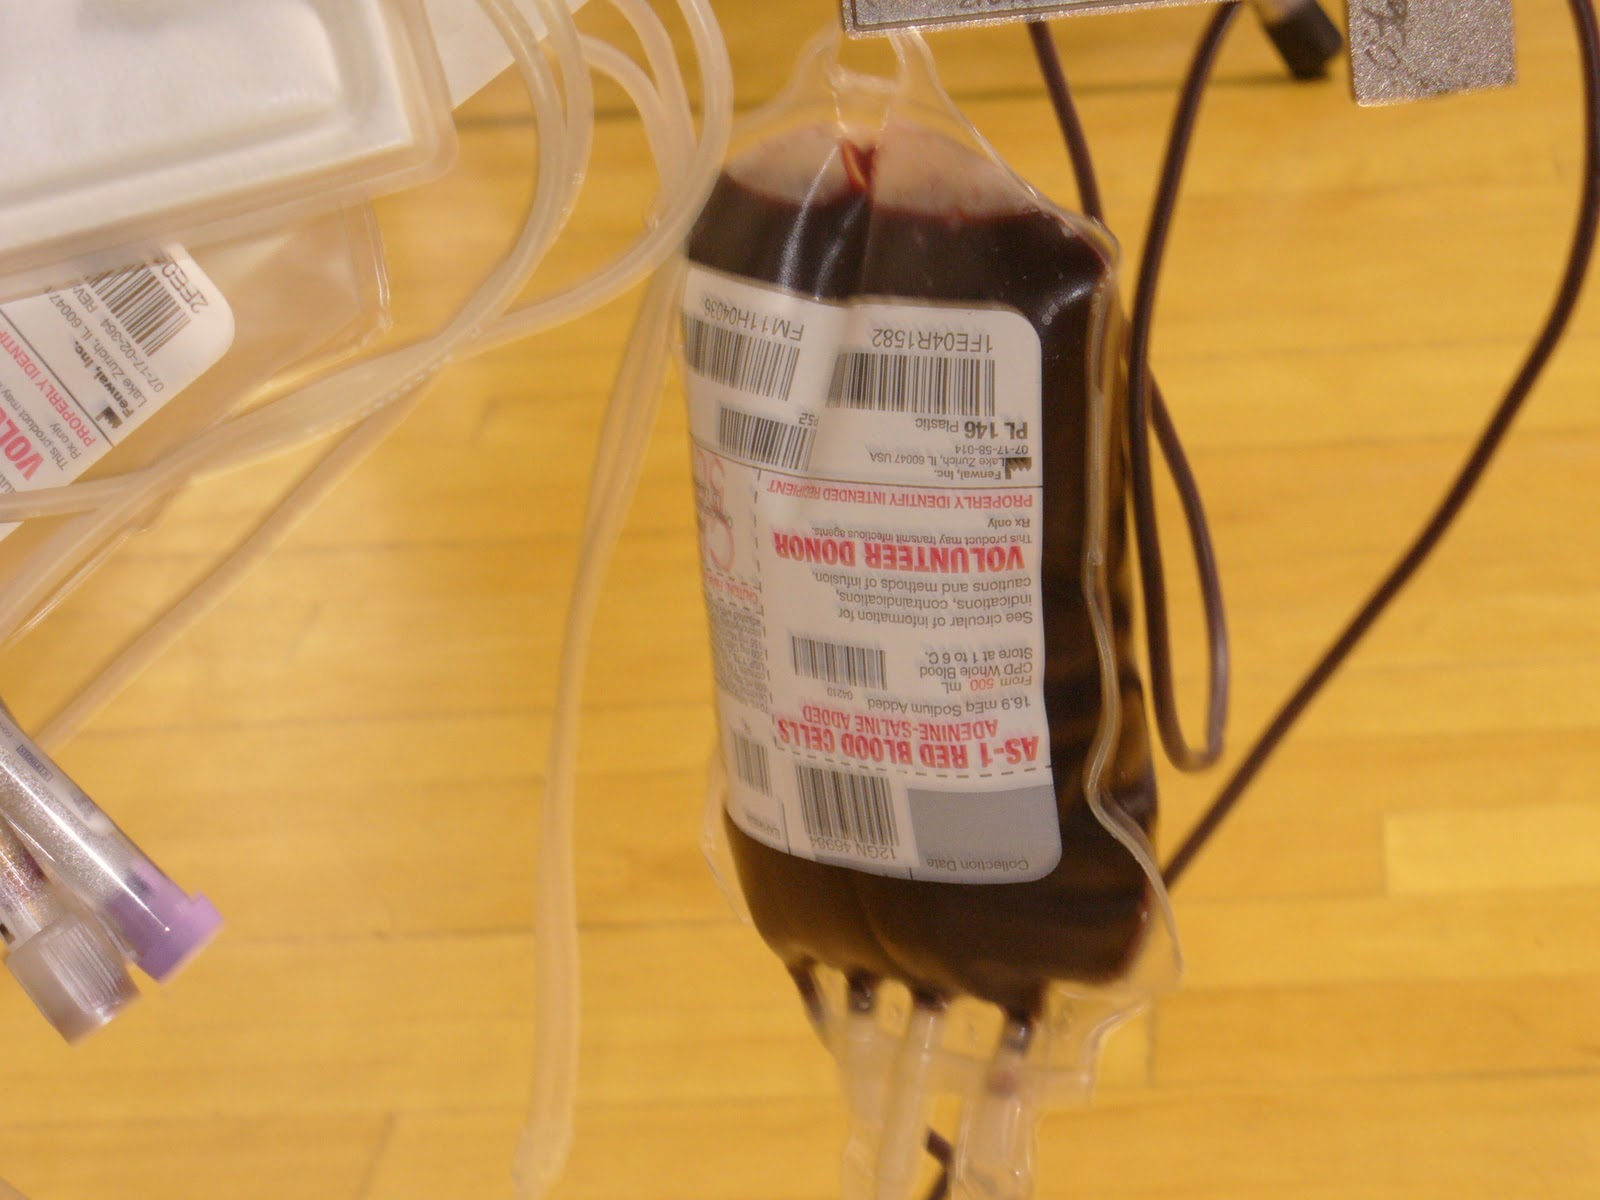 Red Cross Blood Donation Bag